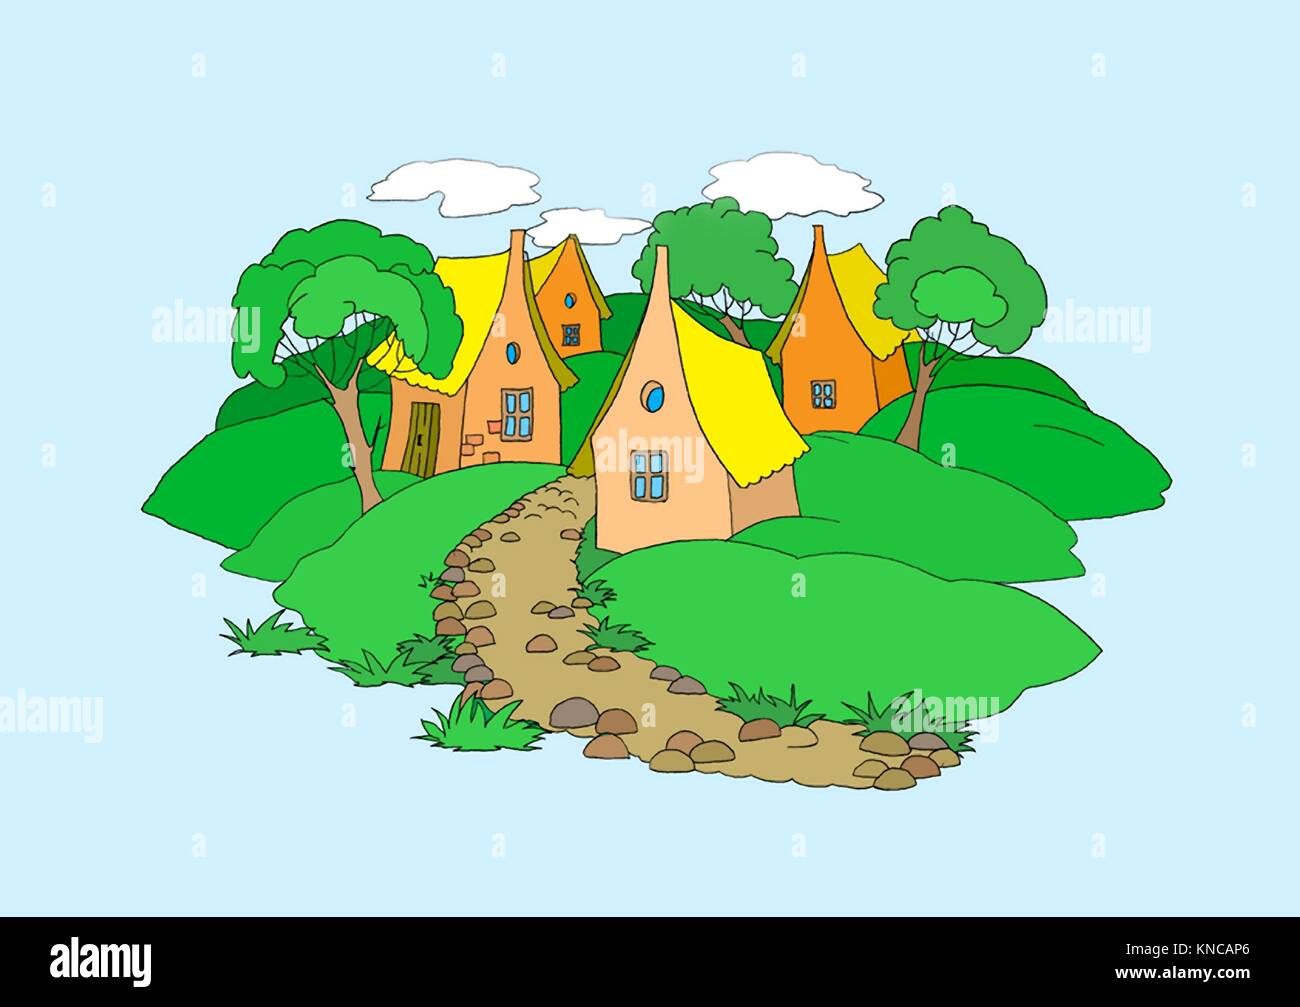 Small Village Illustration. Digital Painting Background, Illustration in primitive cartoon style character. Isolated. - Stock Image